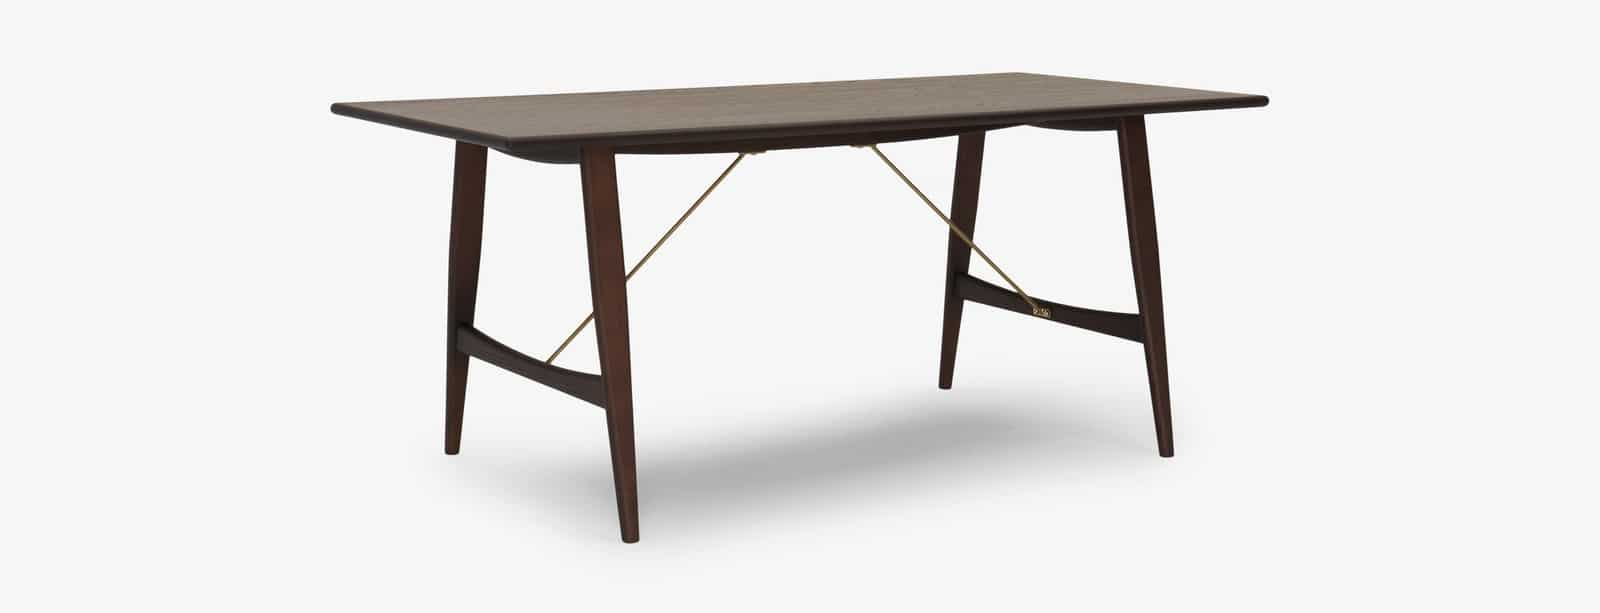 Emery-Dining-Table-T1-193